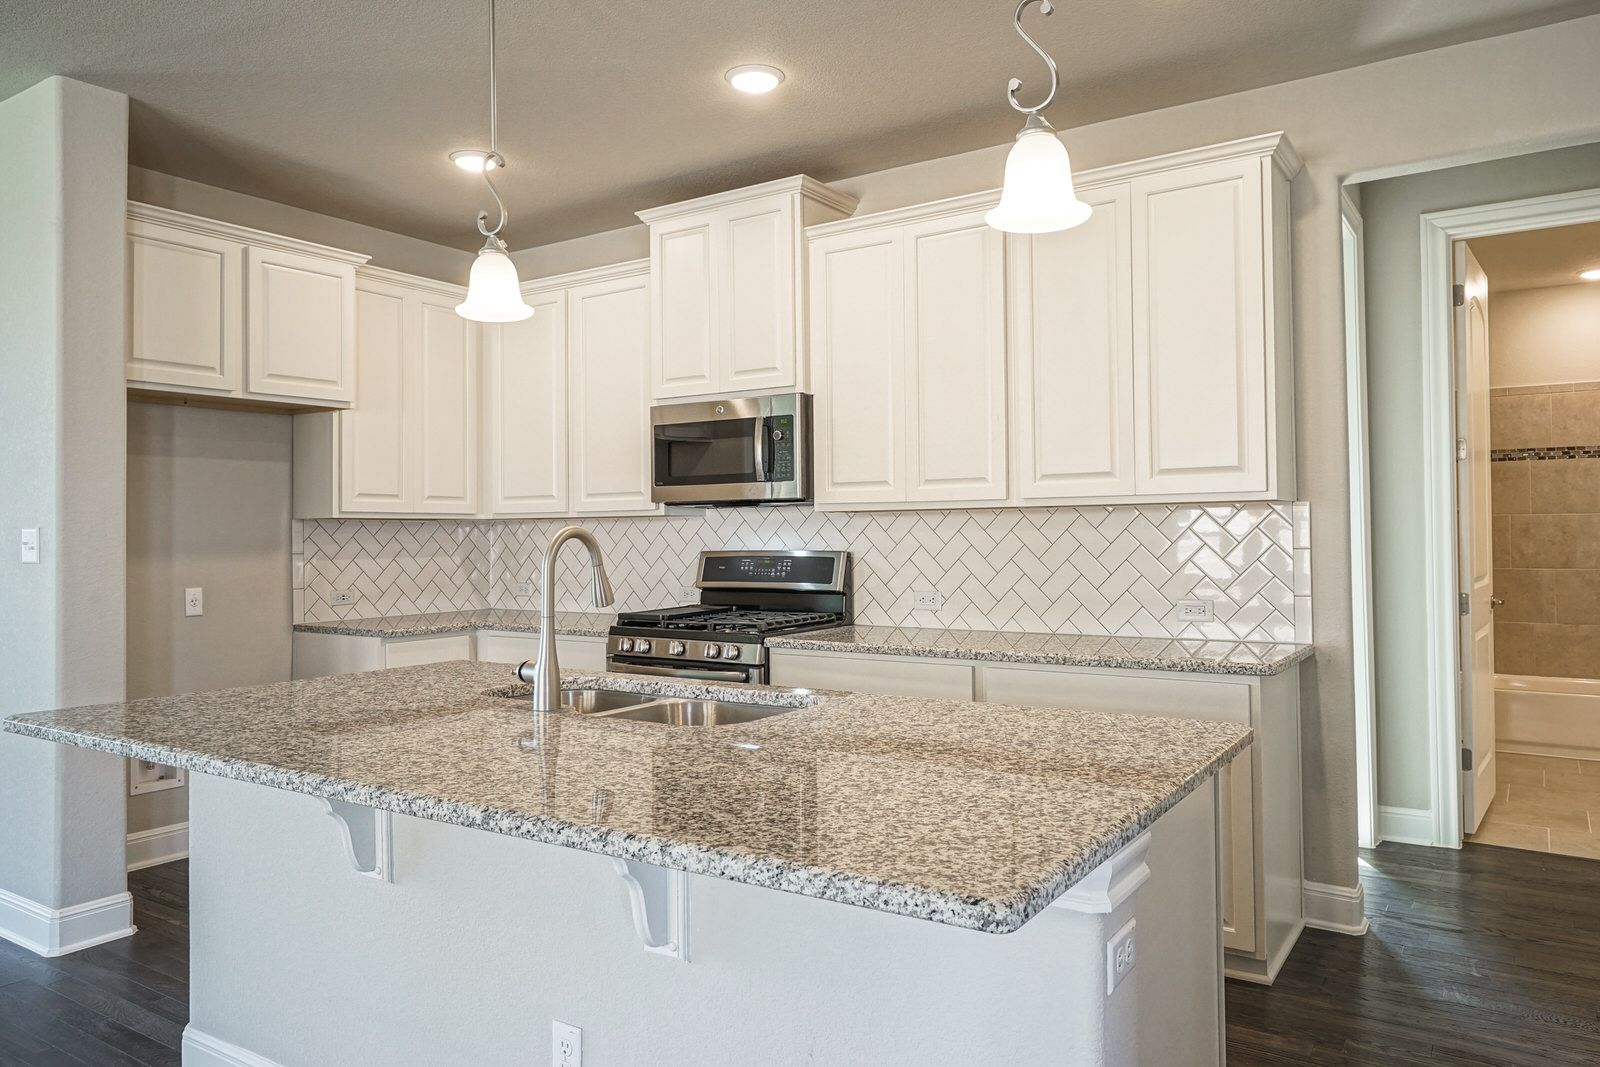 Kitchen featured in the Evergreen By Taylor Morrison in Austin, TX